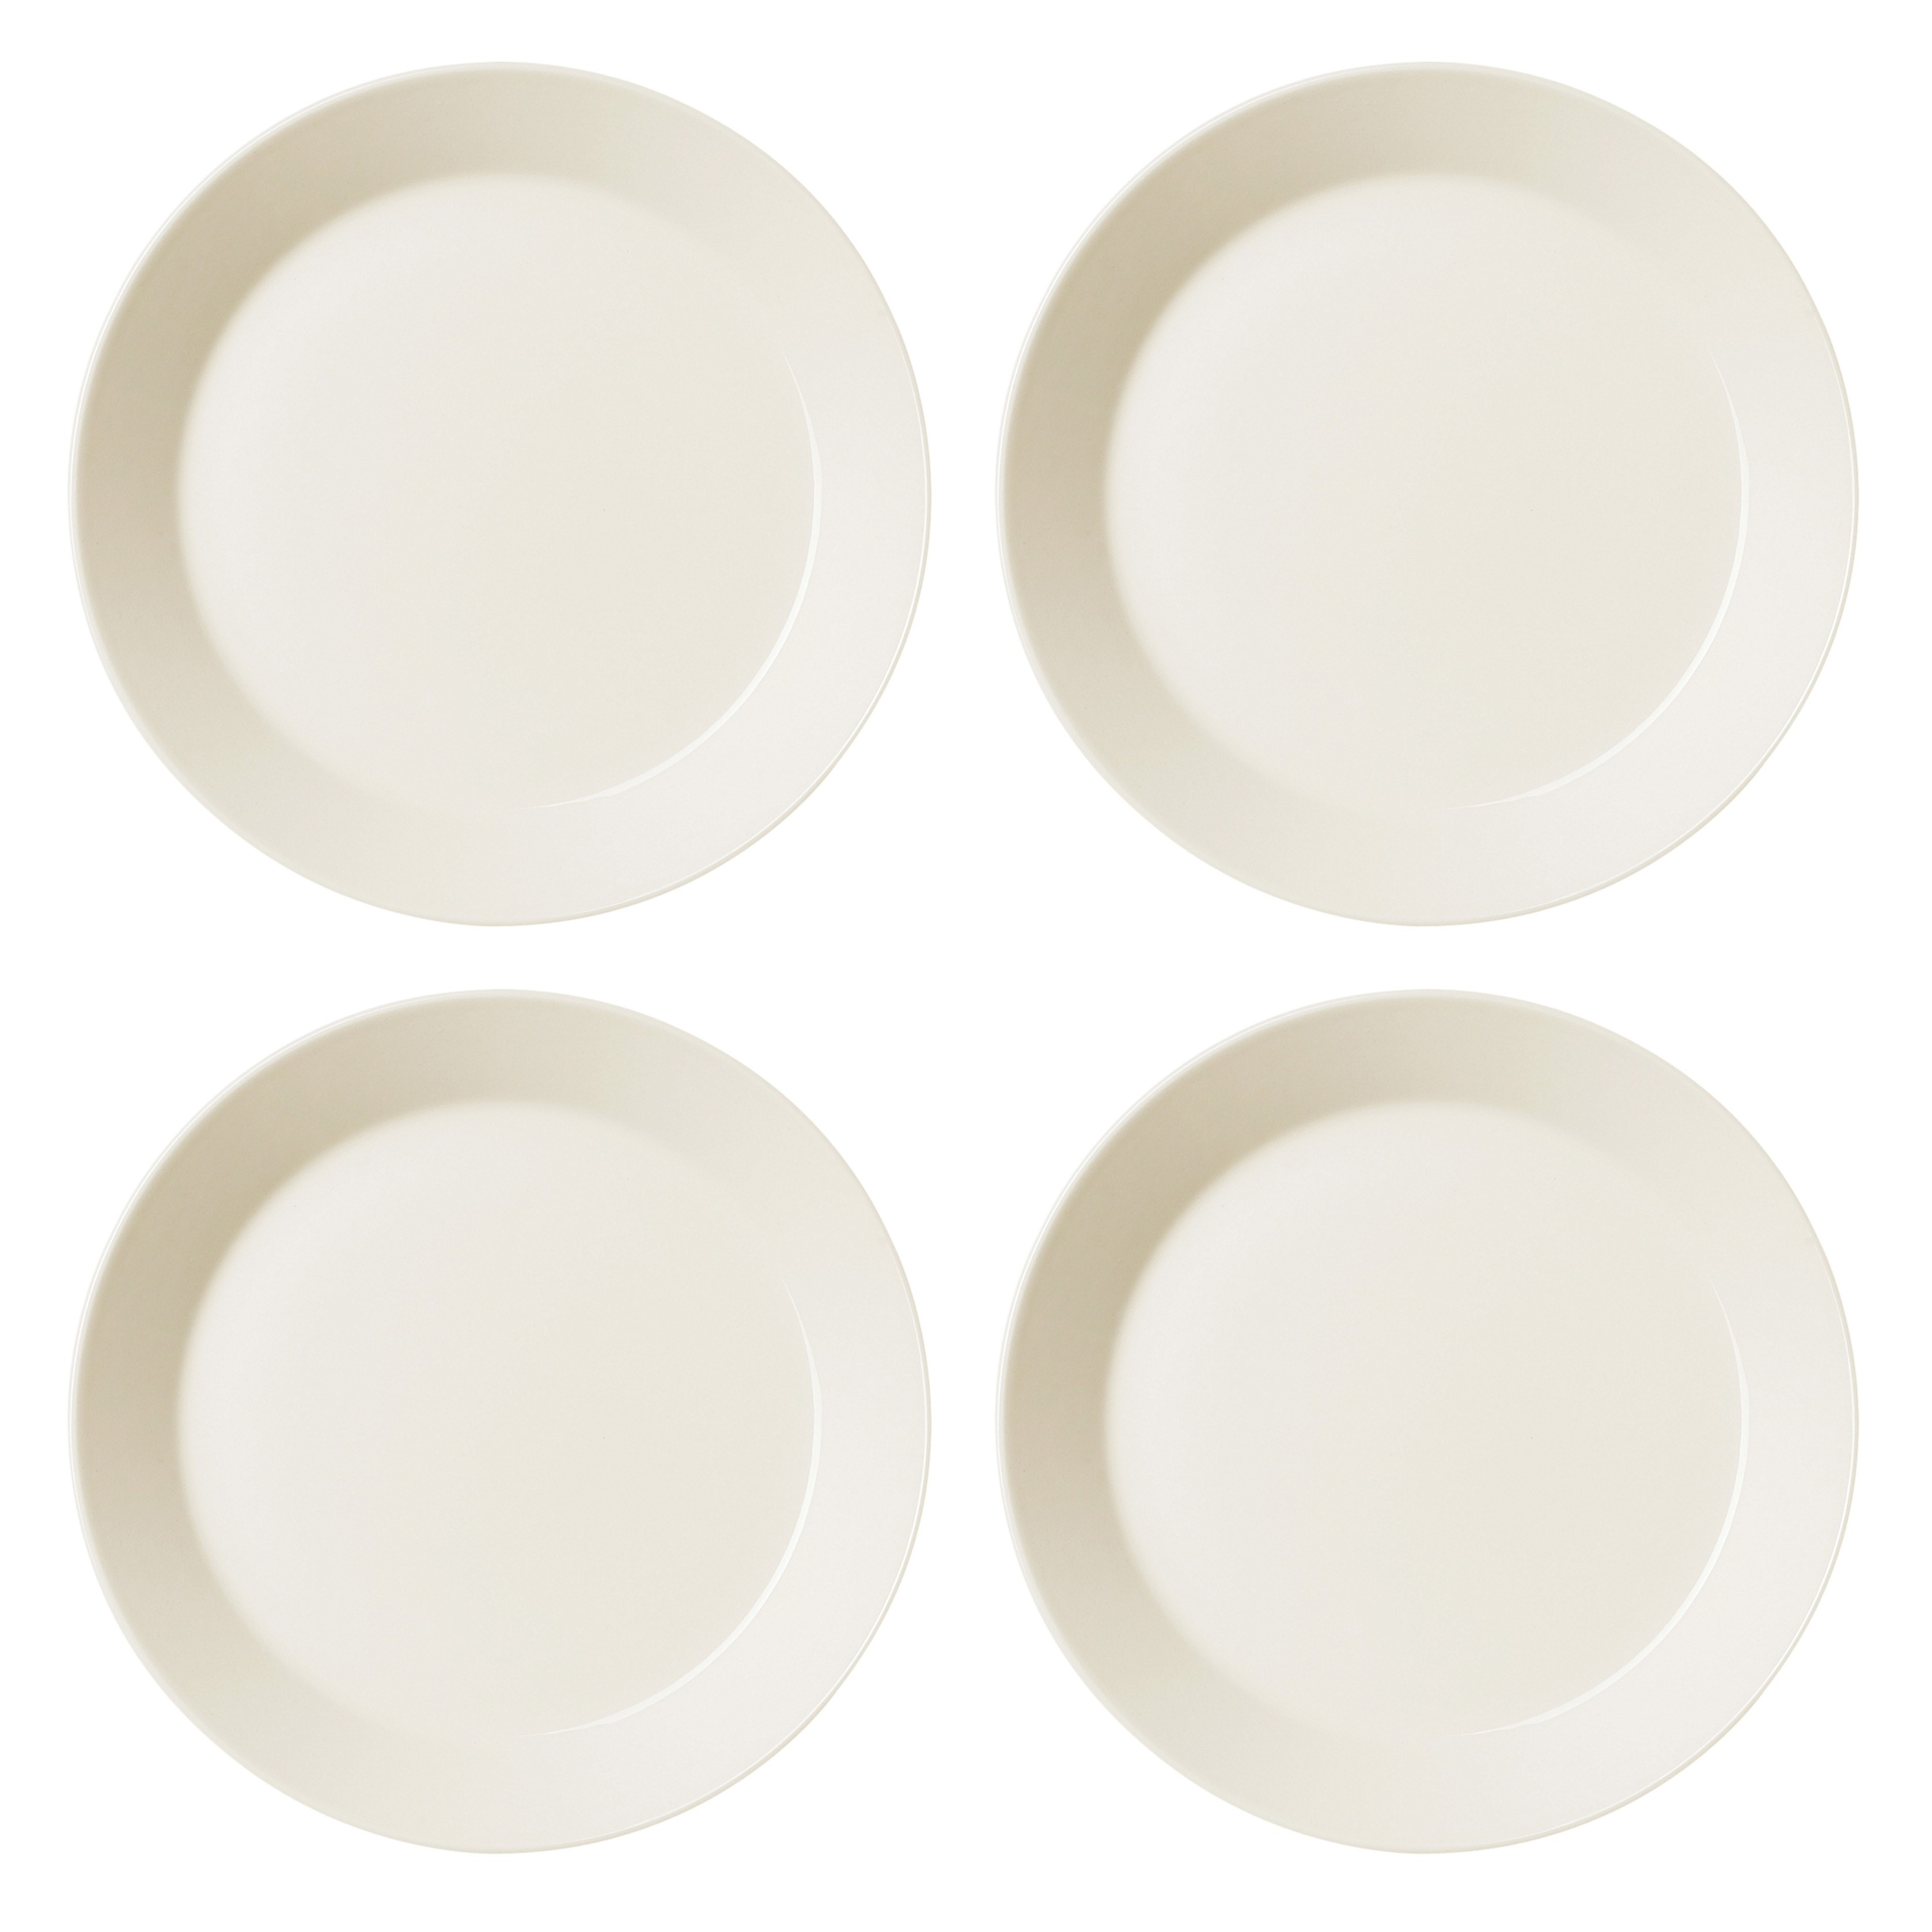 Iittala Teema Dinner Plate (Set of 4)